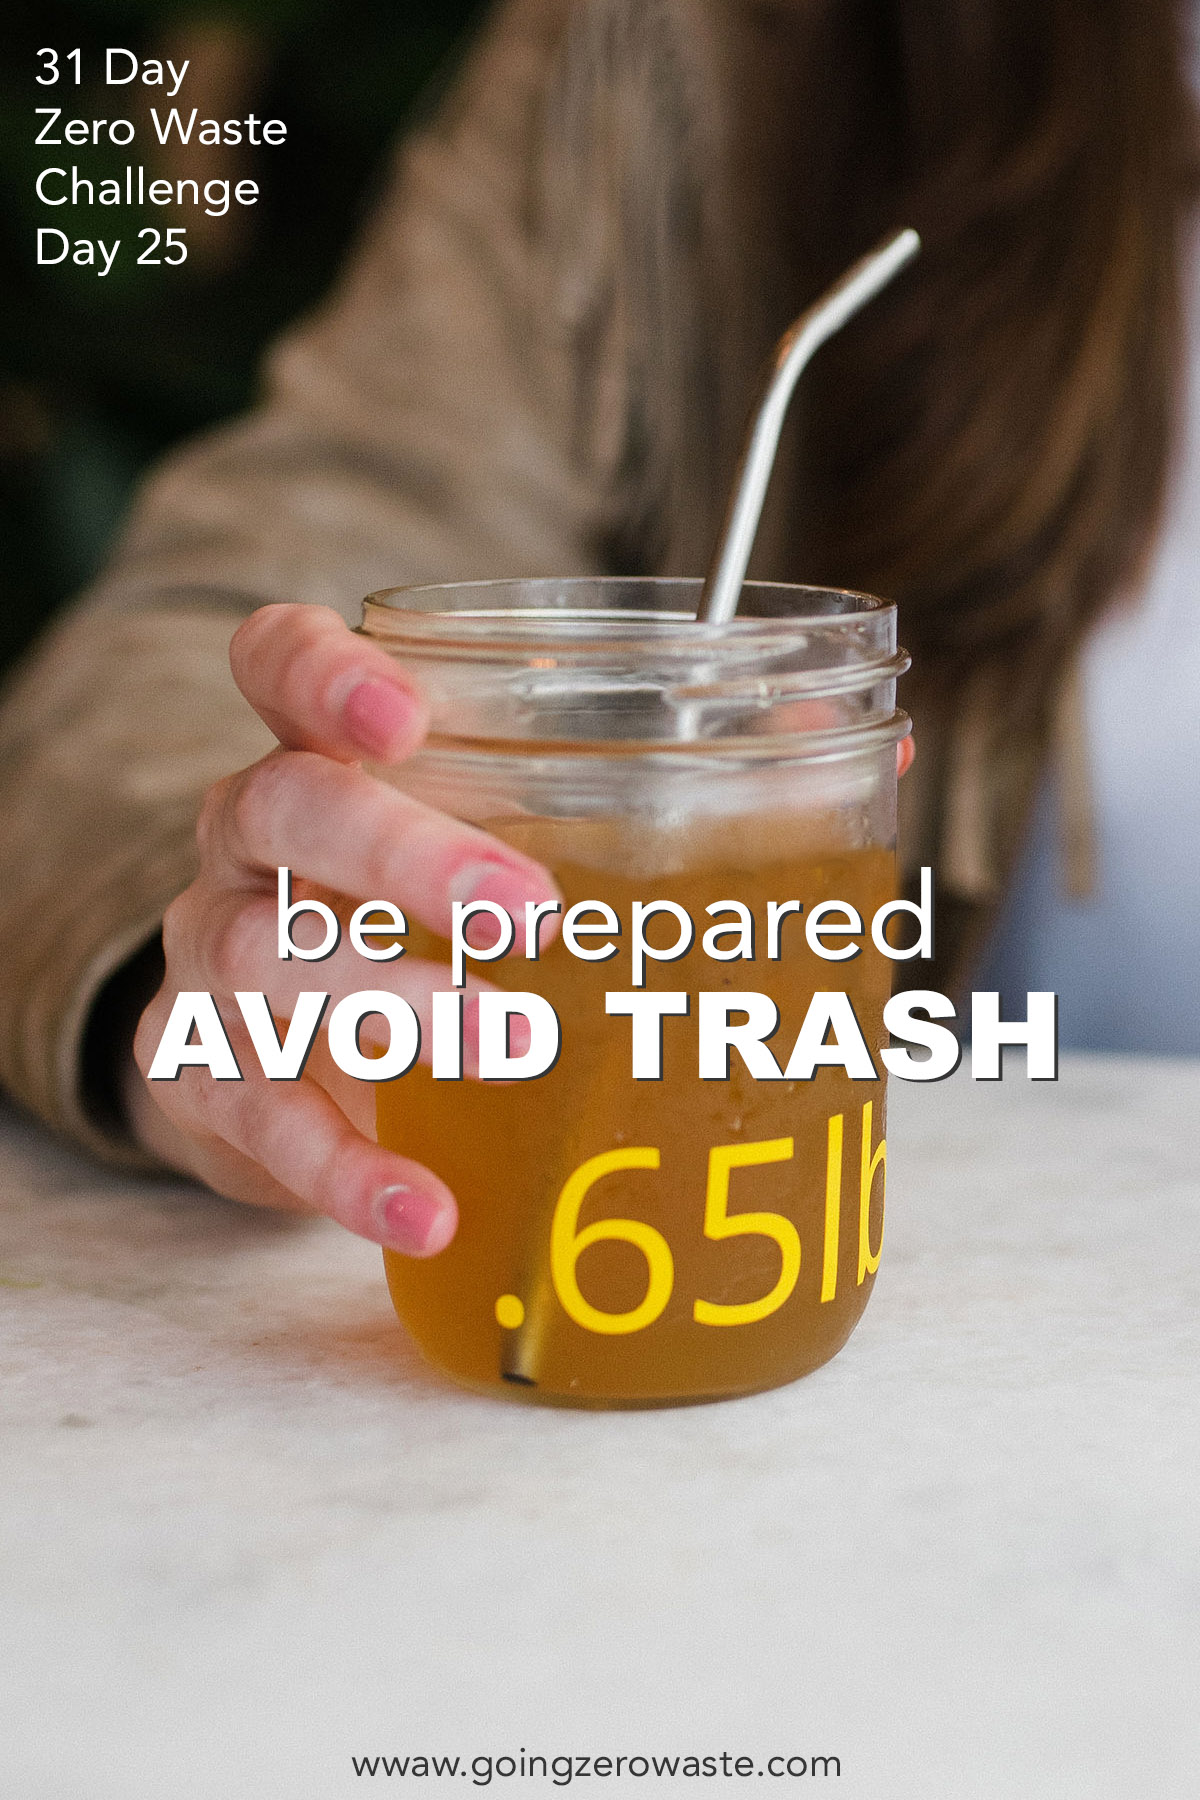 be prepared and avoid trash! Day 25 of the zero waste challenge from www.goingzerowaste.com #zerowastechallenge #zerowaste #beprepared